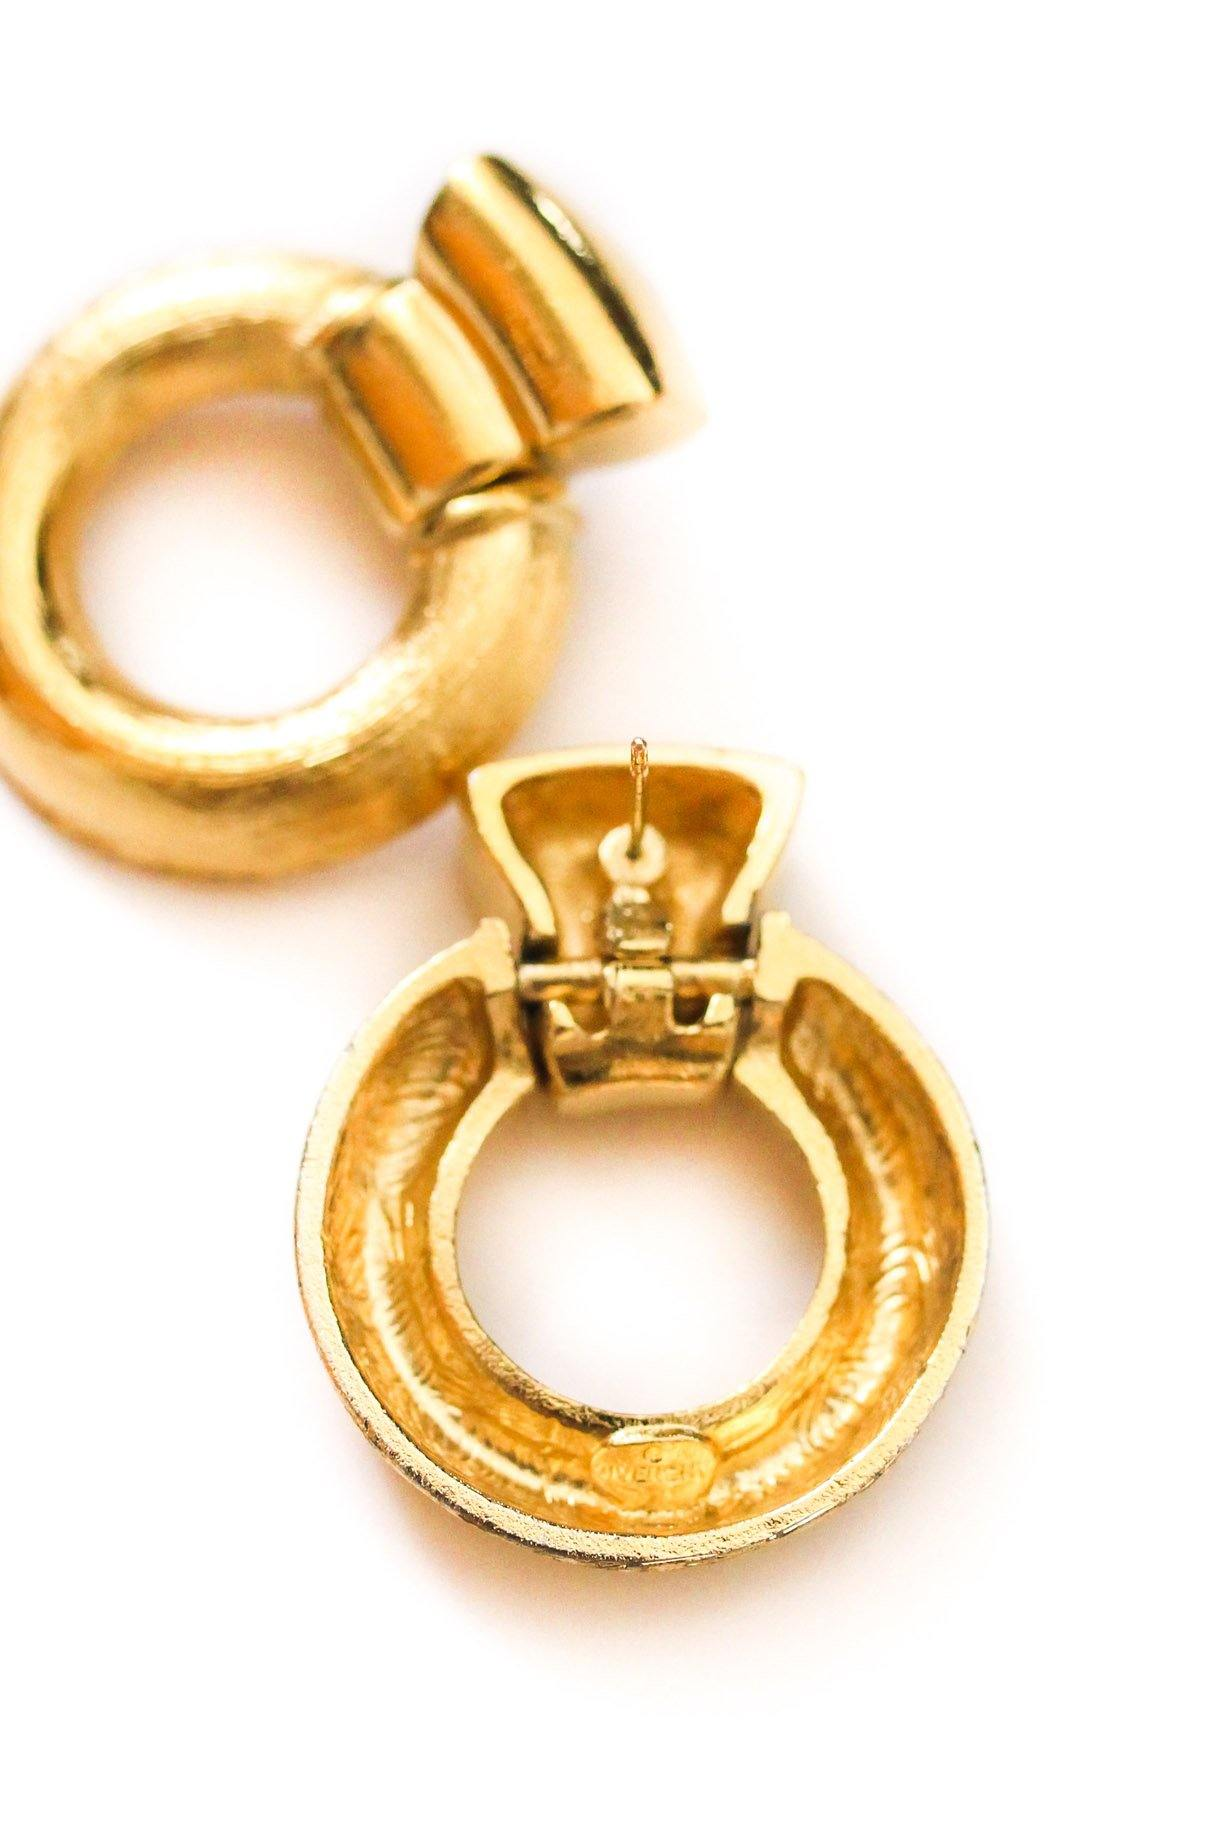 Givenchy Door Knocker Pierced Earrings